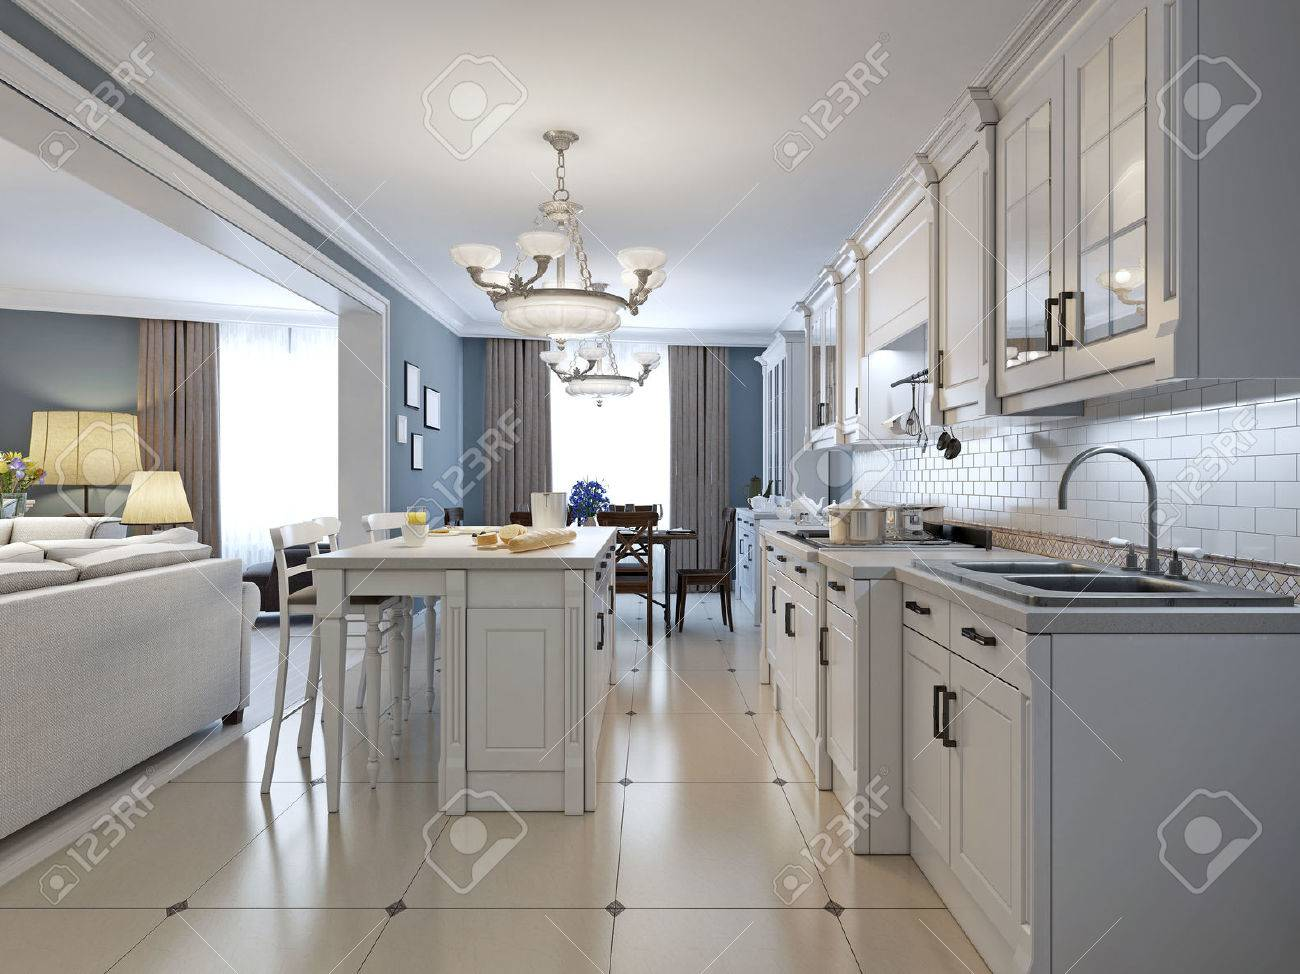 Kitchen With Stainless Steel Appliances, White Cabinets, White ...